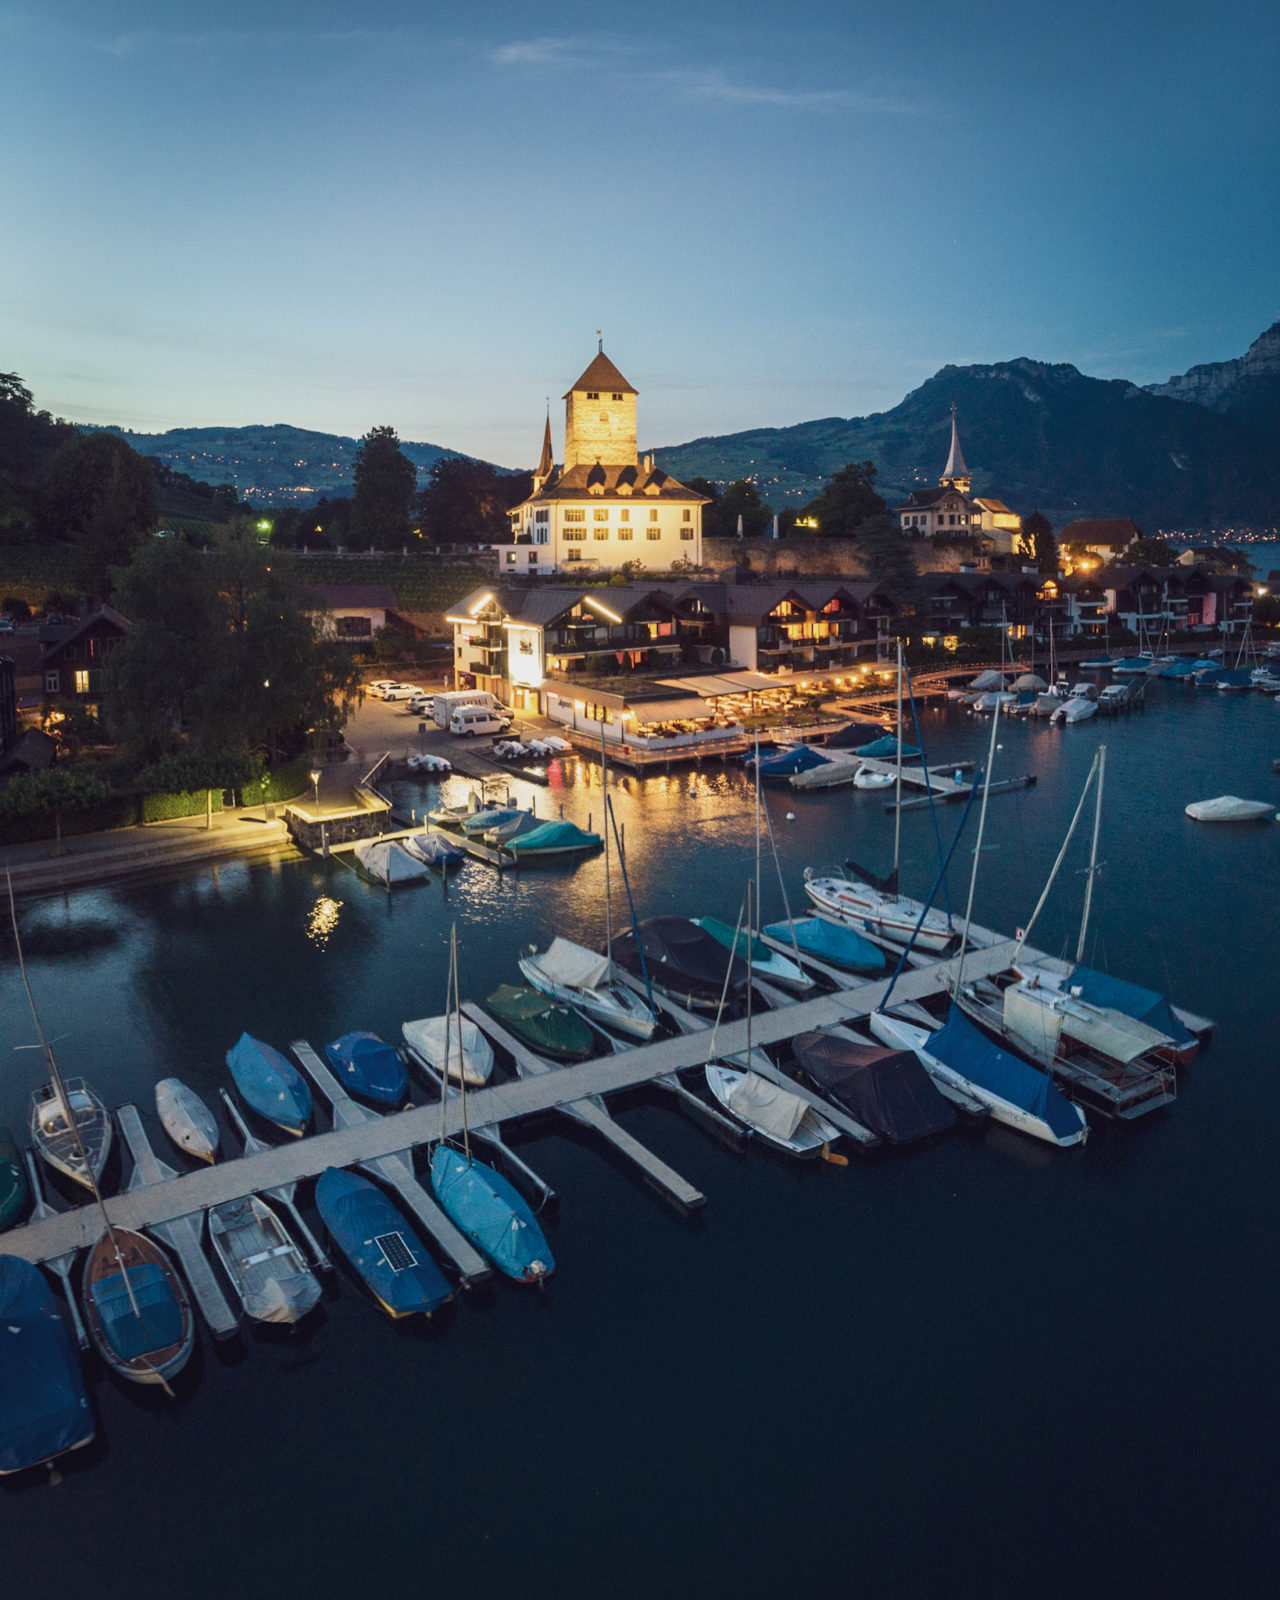 Spiez castle, photographed at dusk using a Mavic Air drone